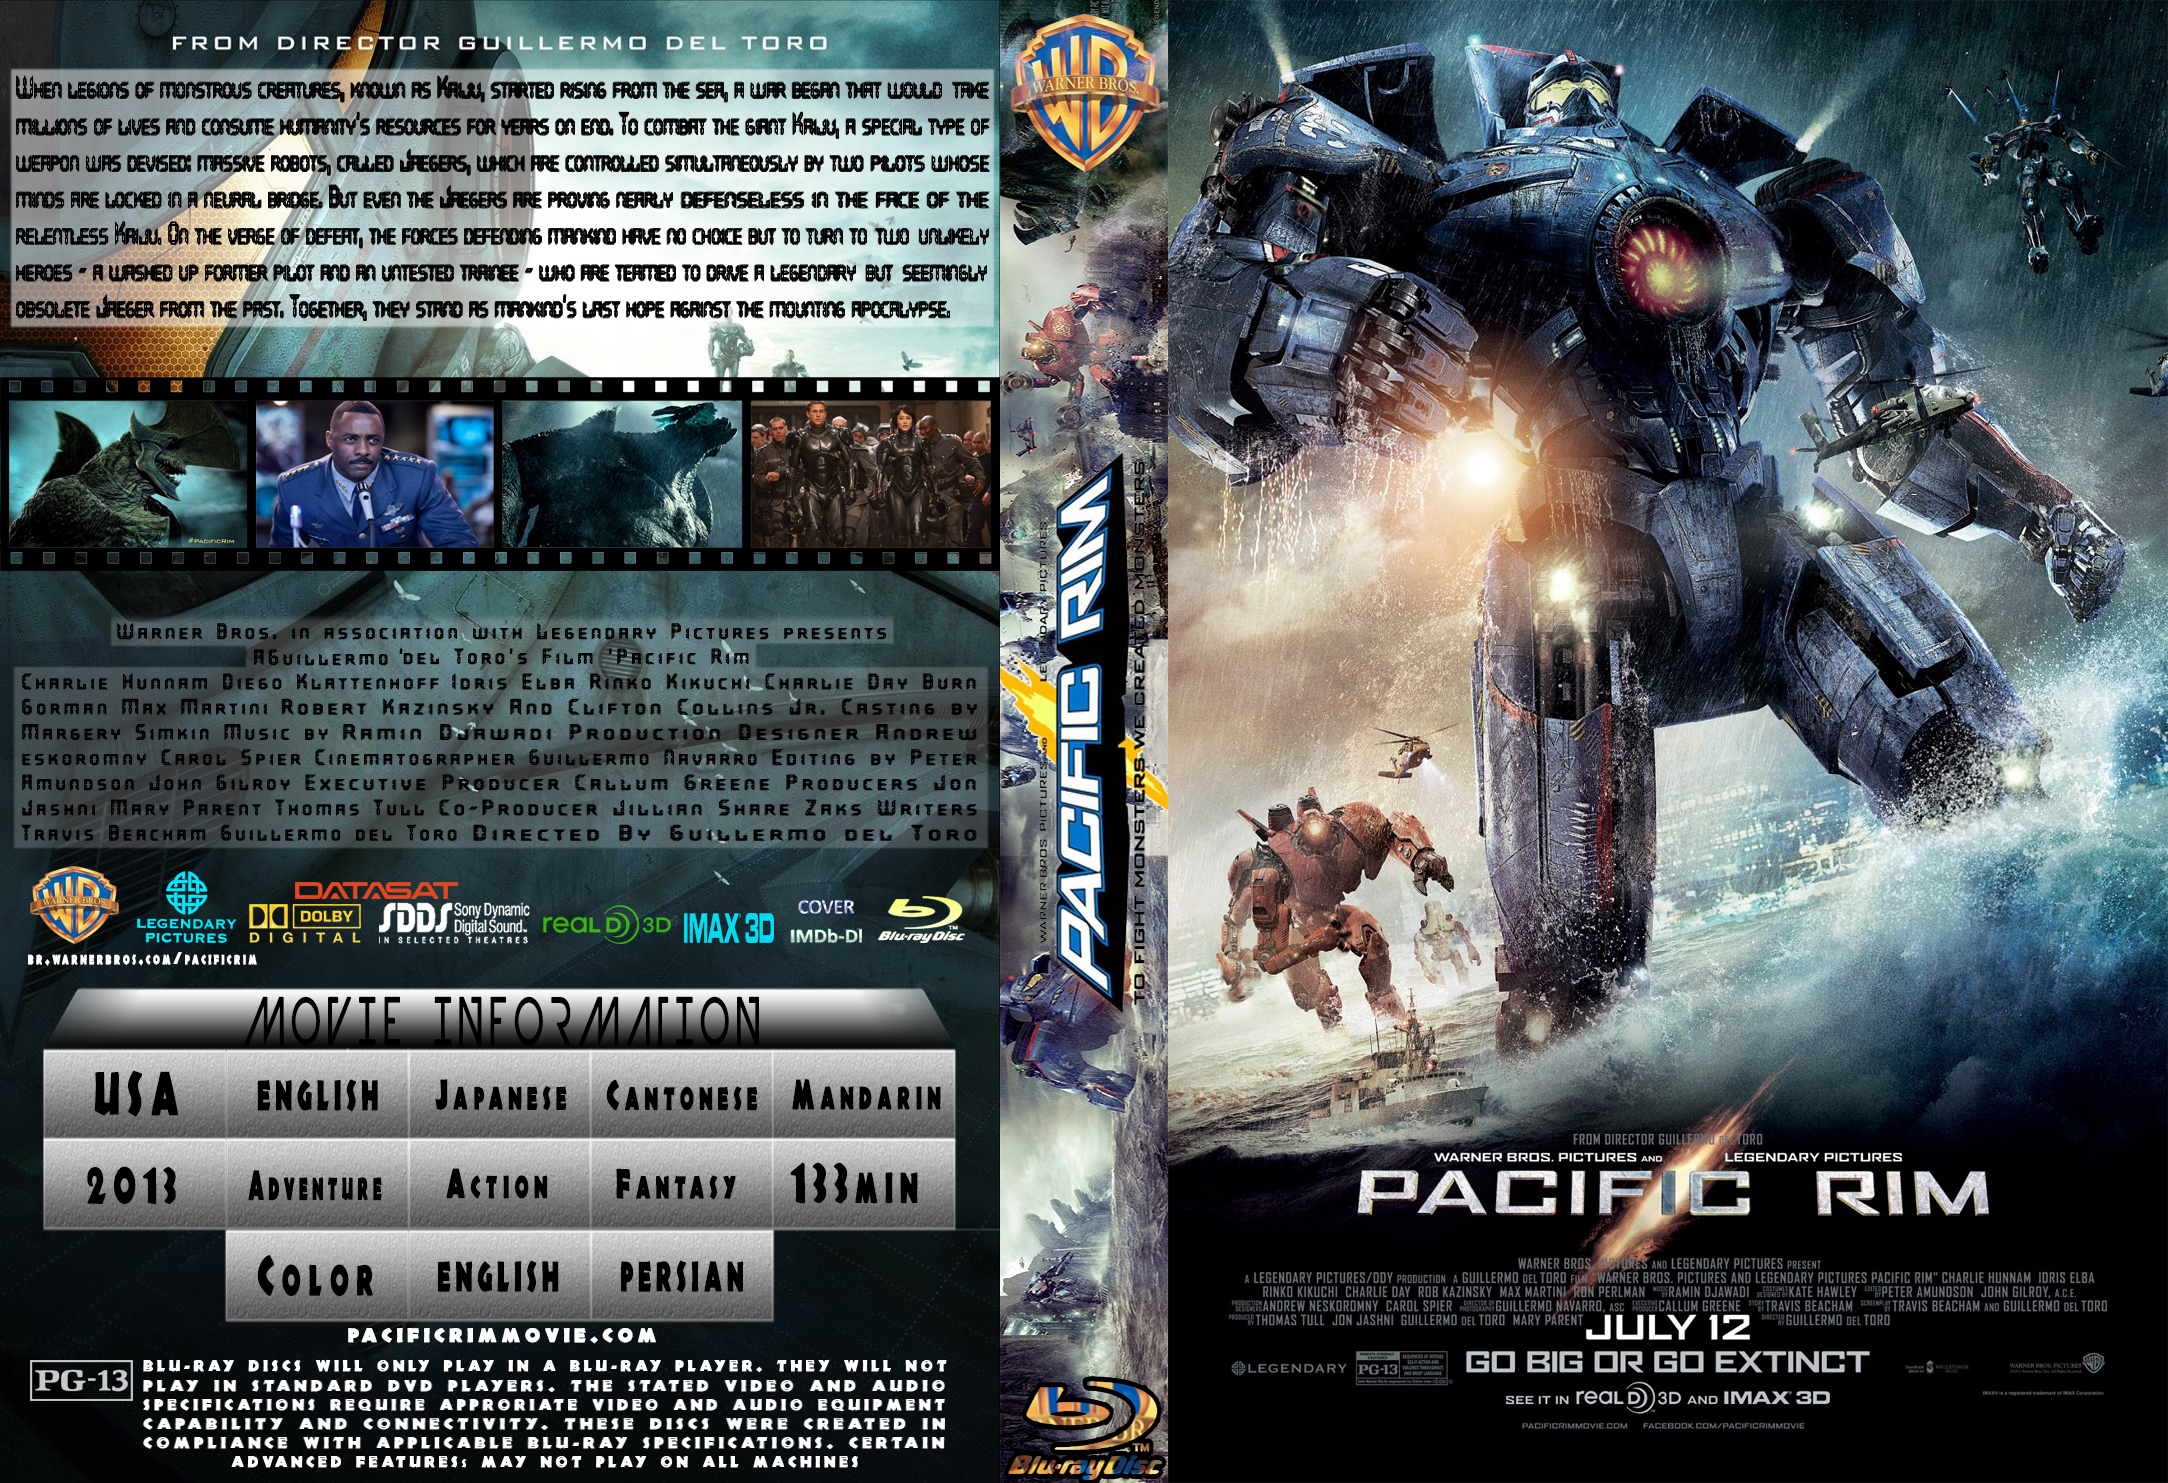 COVERS.BOX.SK ::: Pacific Rim 2013 [ IMDB-DL ] - high ... Pacific Rim Blu Ray Cover